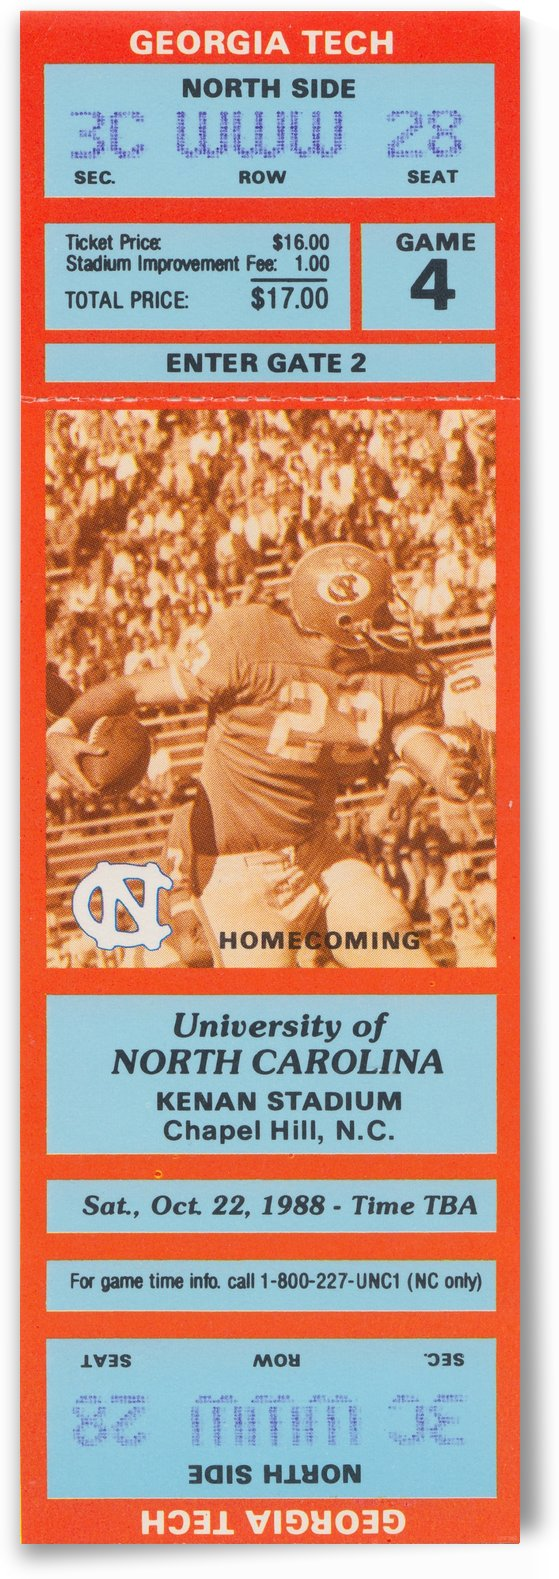 1988 North Carolina Football Homecoming Ticket Stub Art_Ticket Collection by Row One Brand